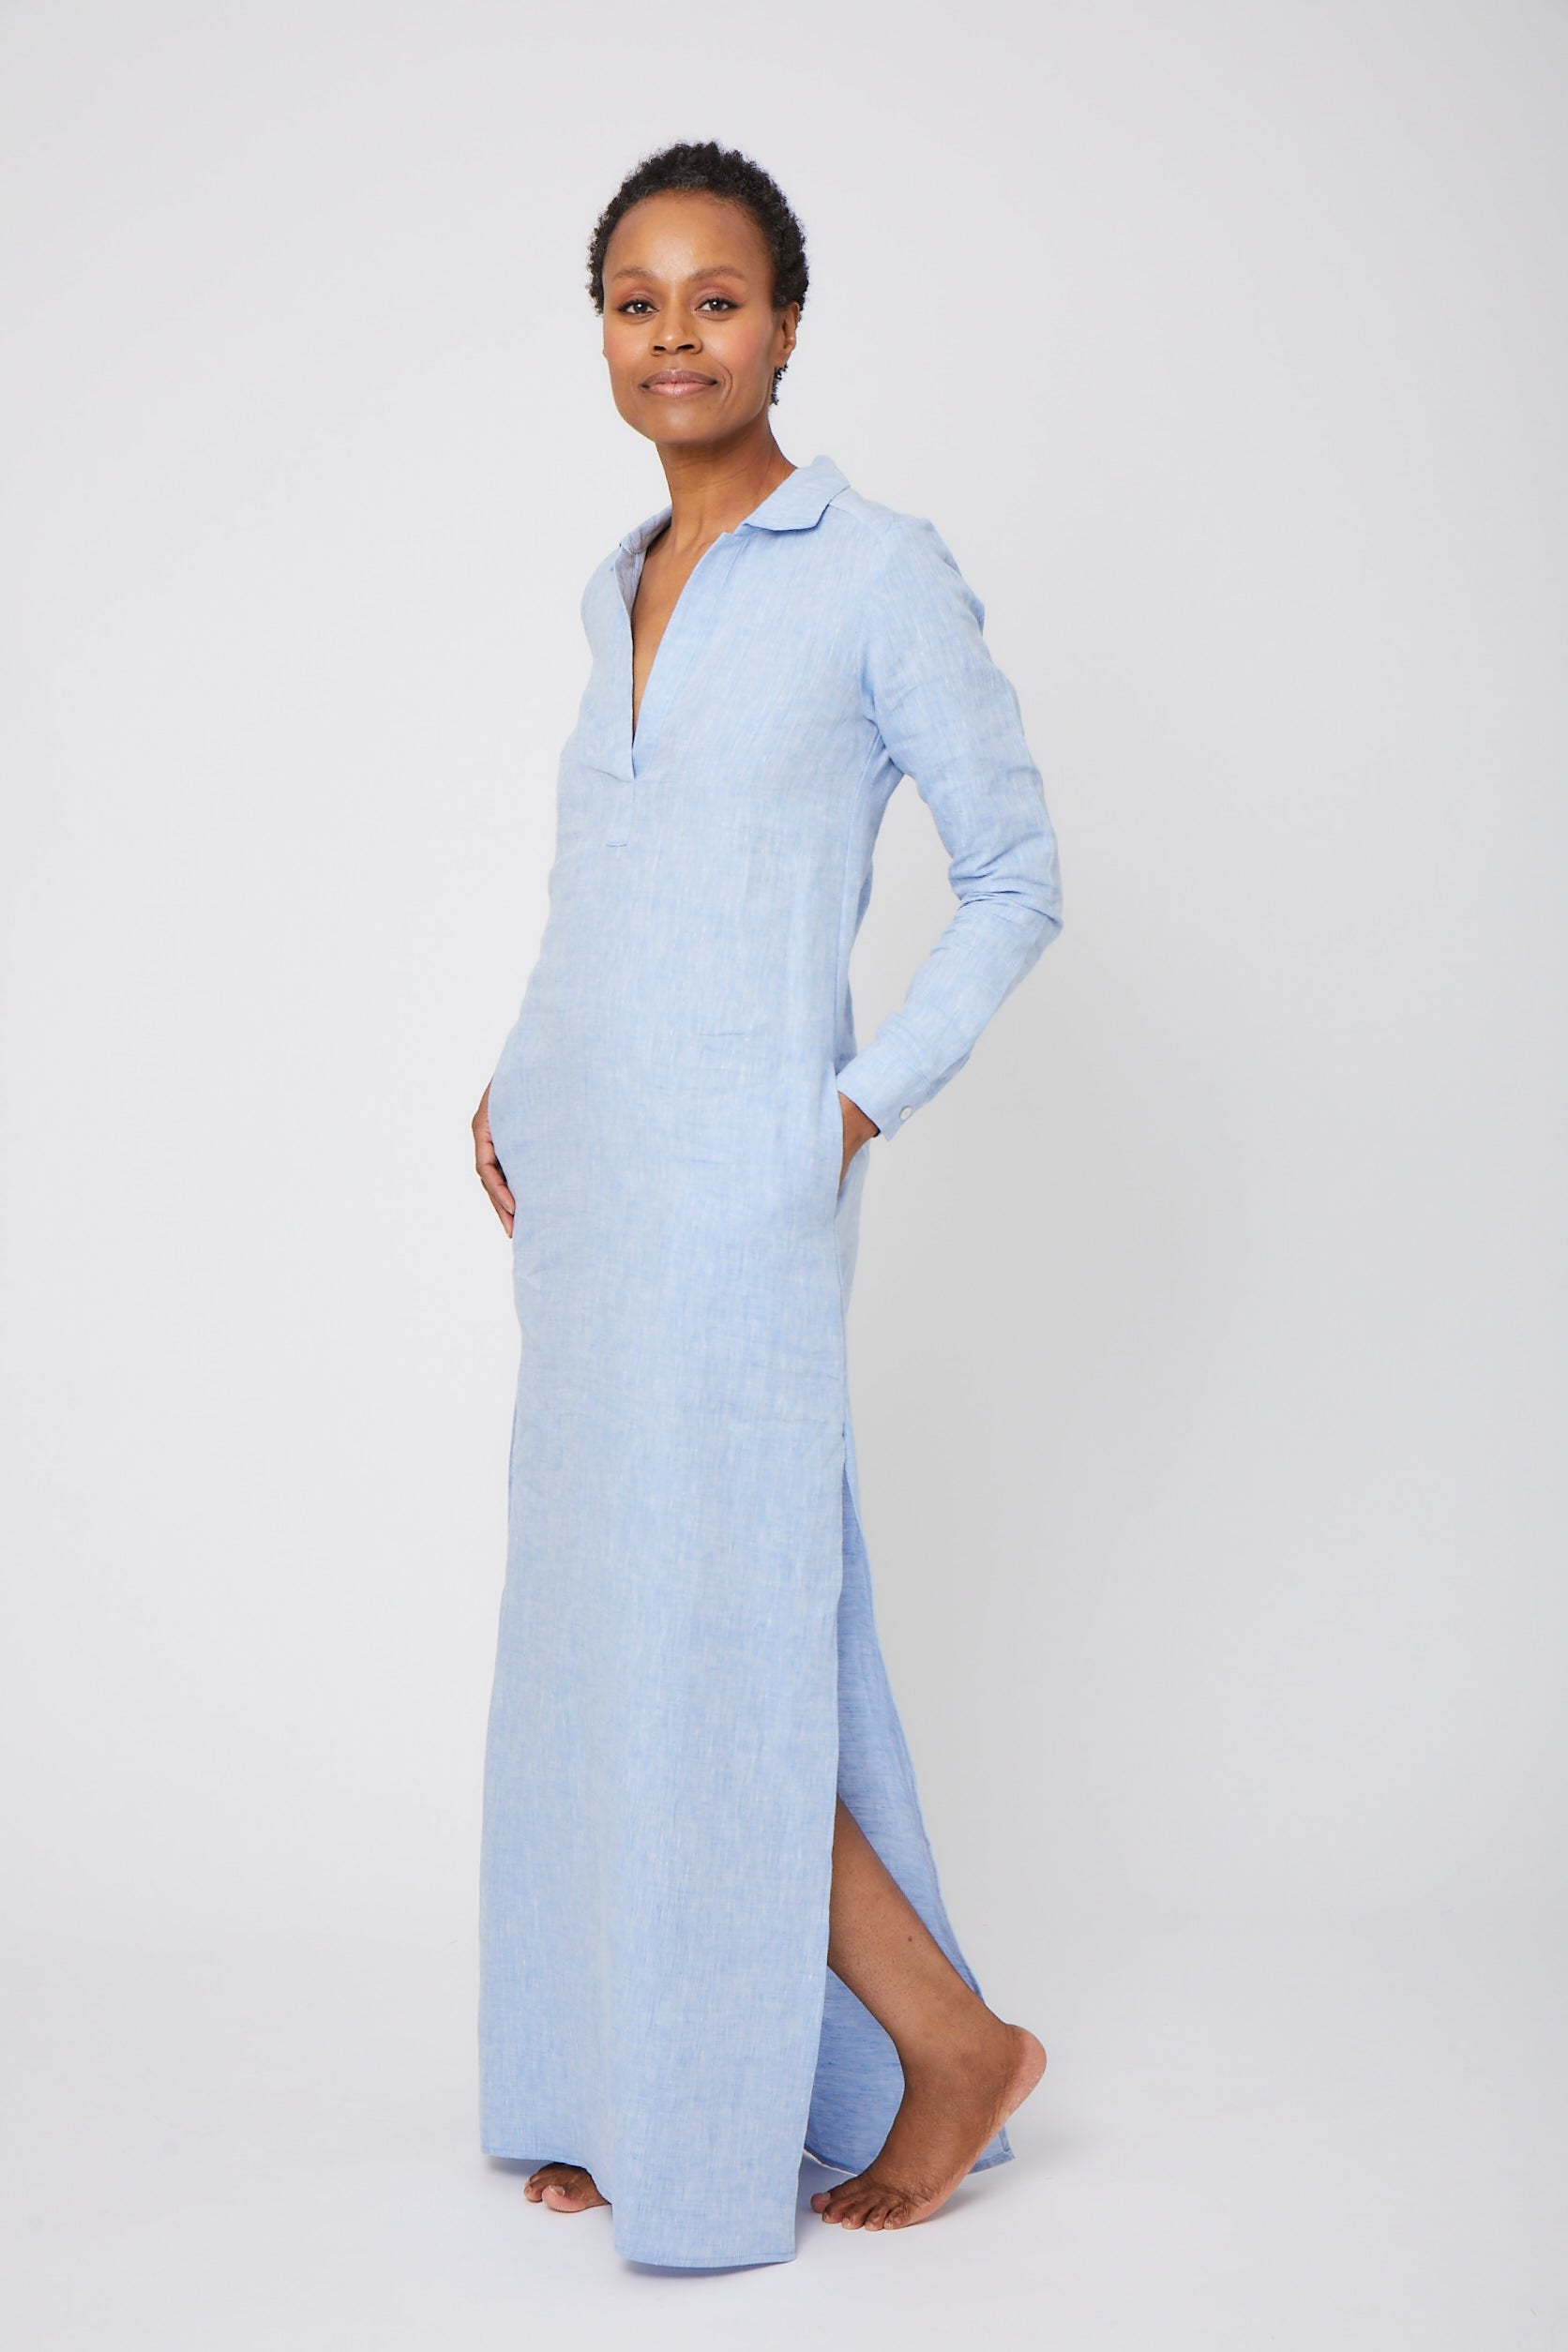 PLF_022620_49_7005_LONG_LINEN_LIGHT_BLUE_DRESS_1302